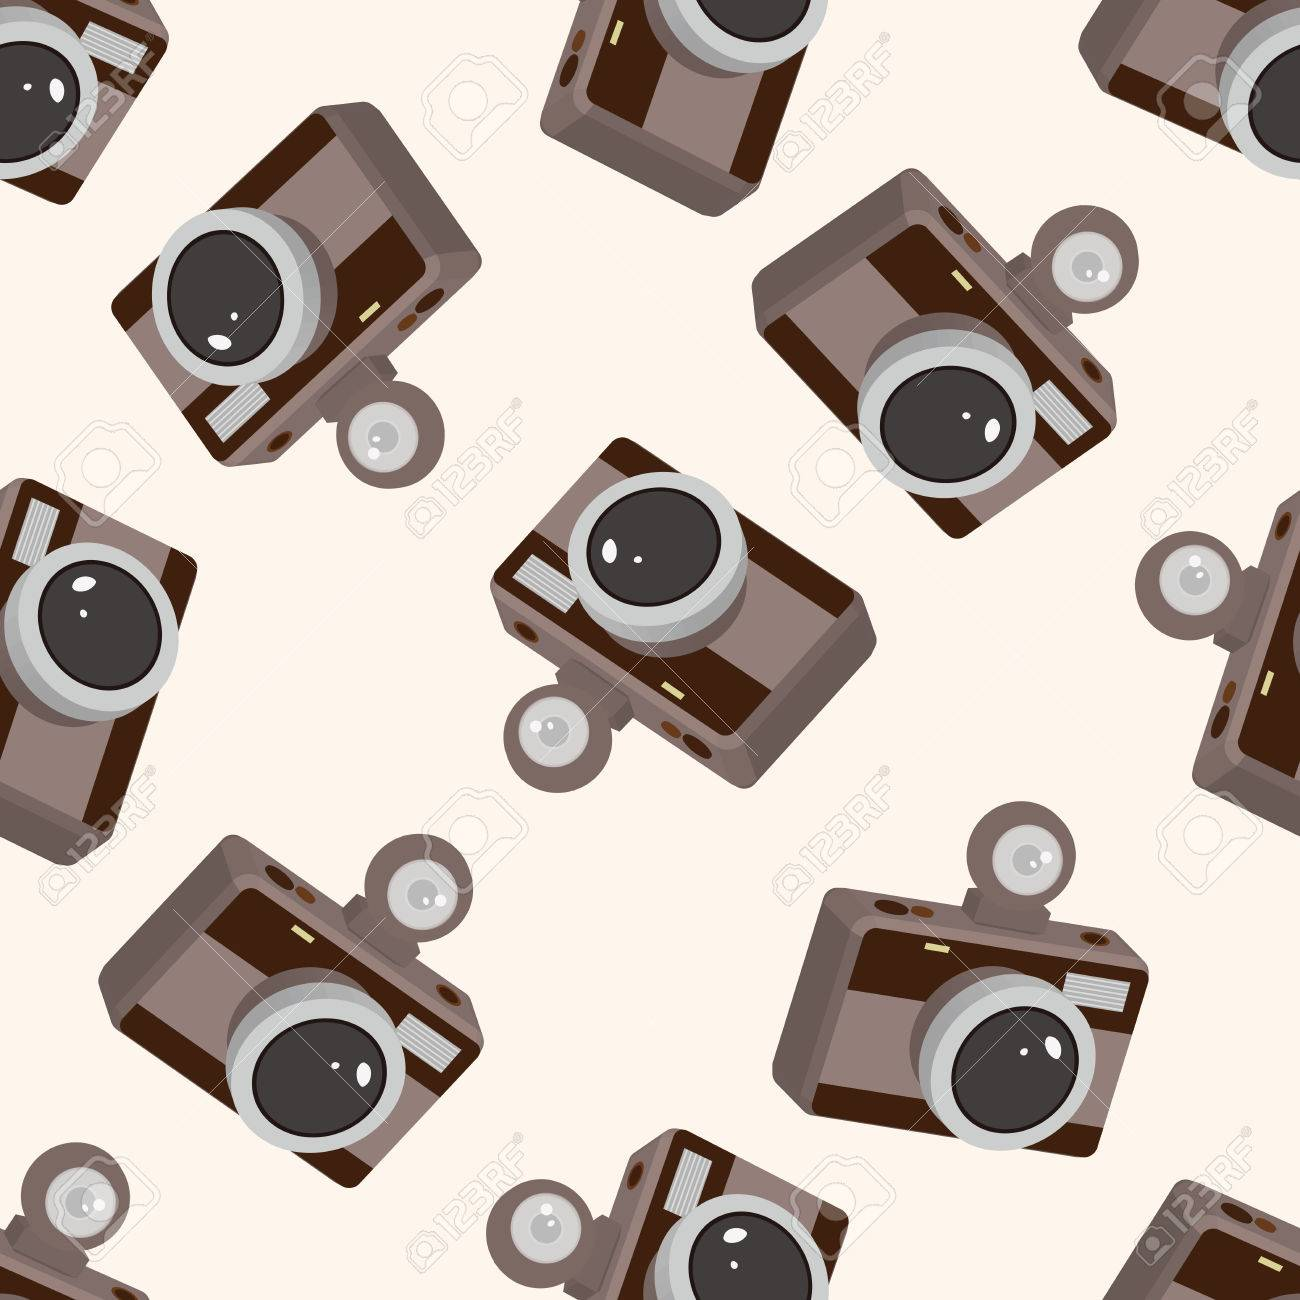 Camera Cartoon Seamless Pattern Background Stock Vector